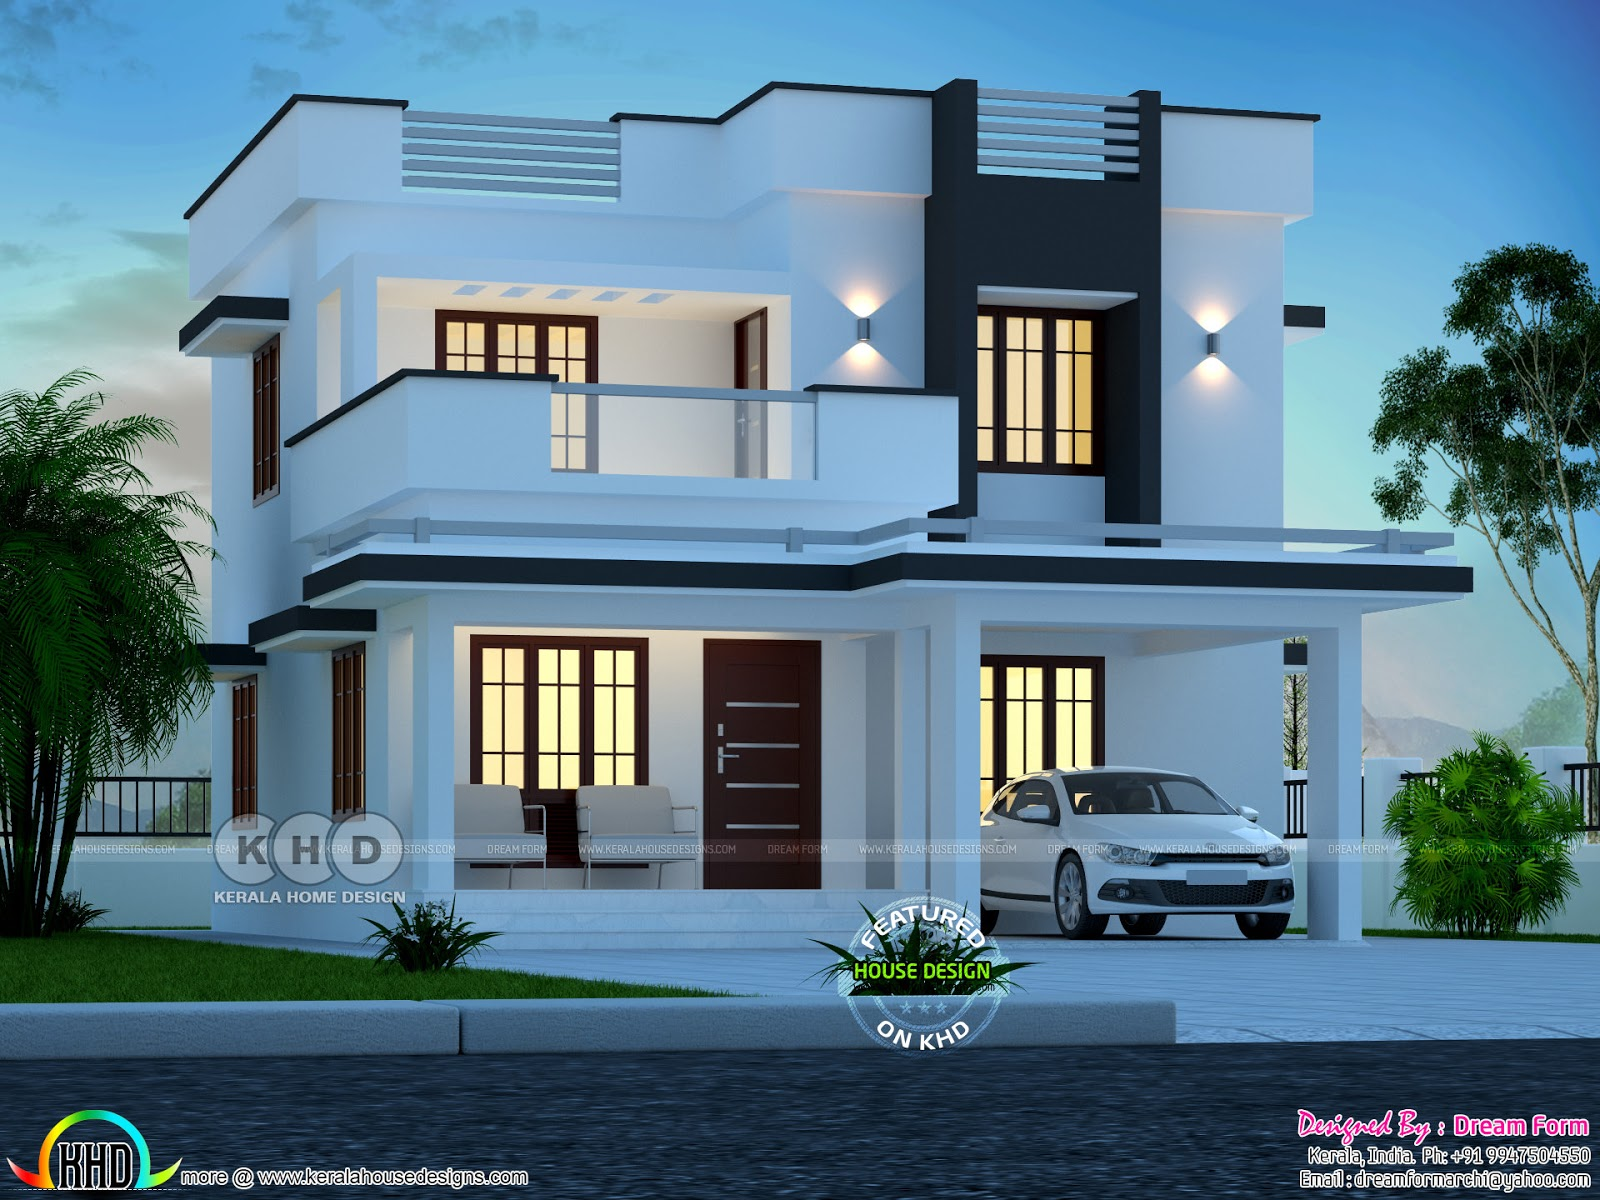 3 bedroom 1700 sq.ft modern home design - Kerala home ...